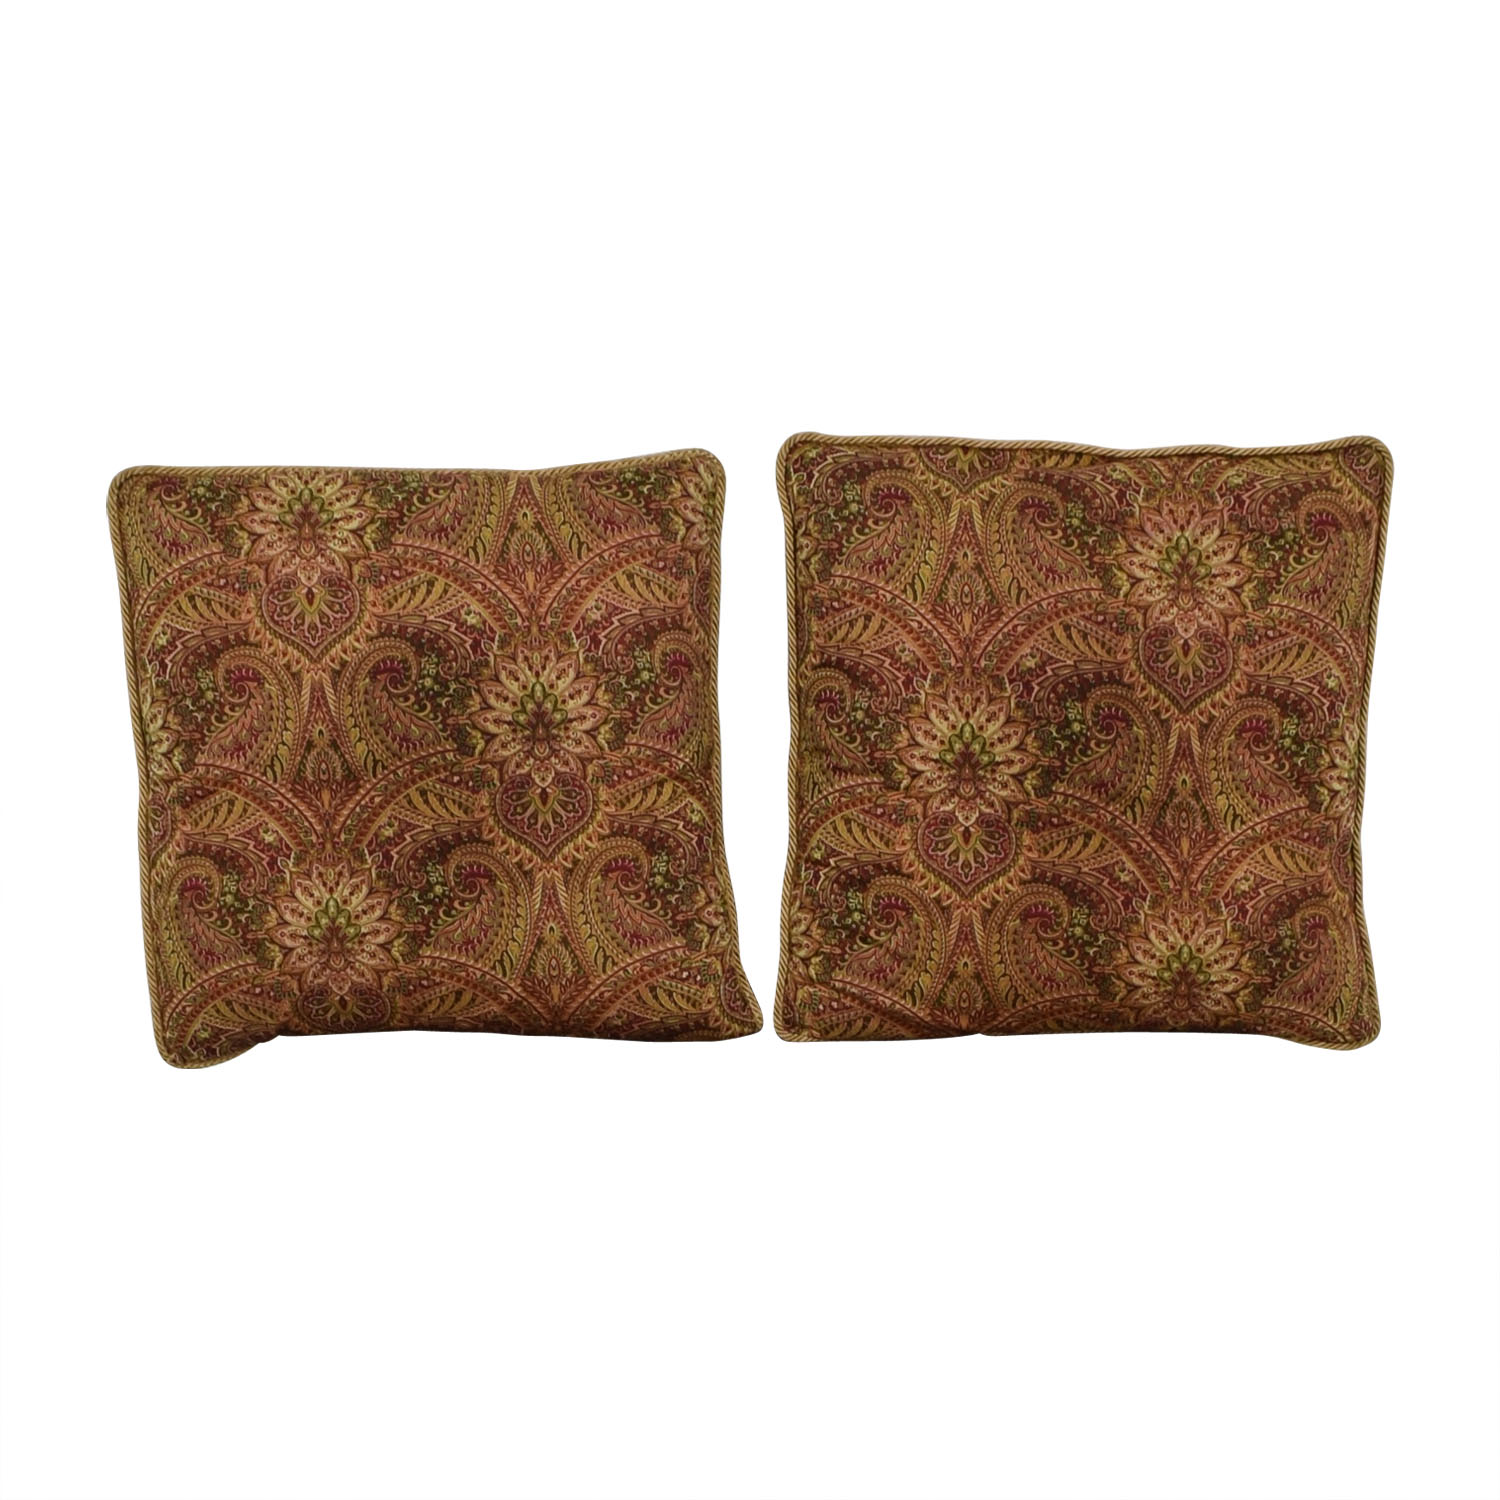 Paisley Floor Pillows with Gold Braid Trim nyc